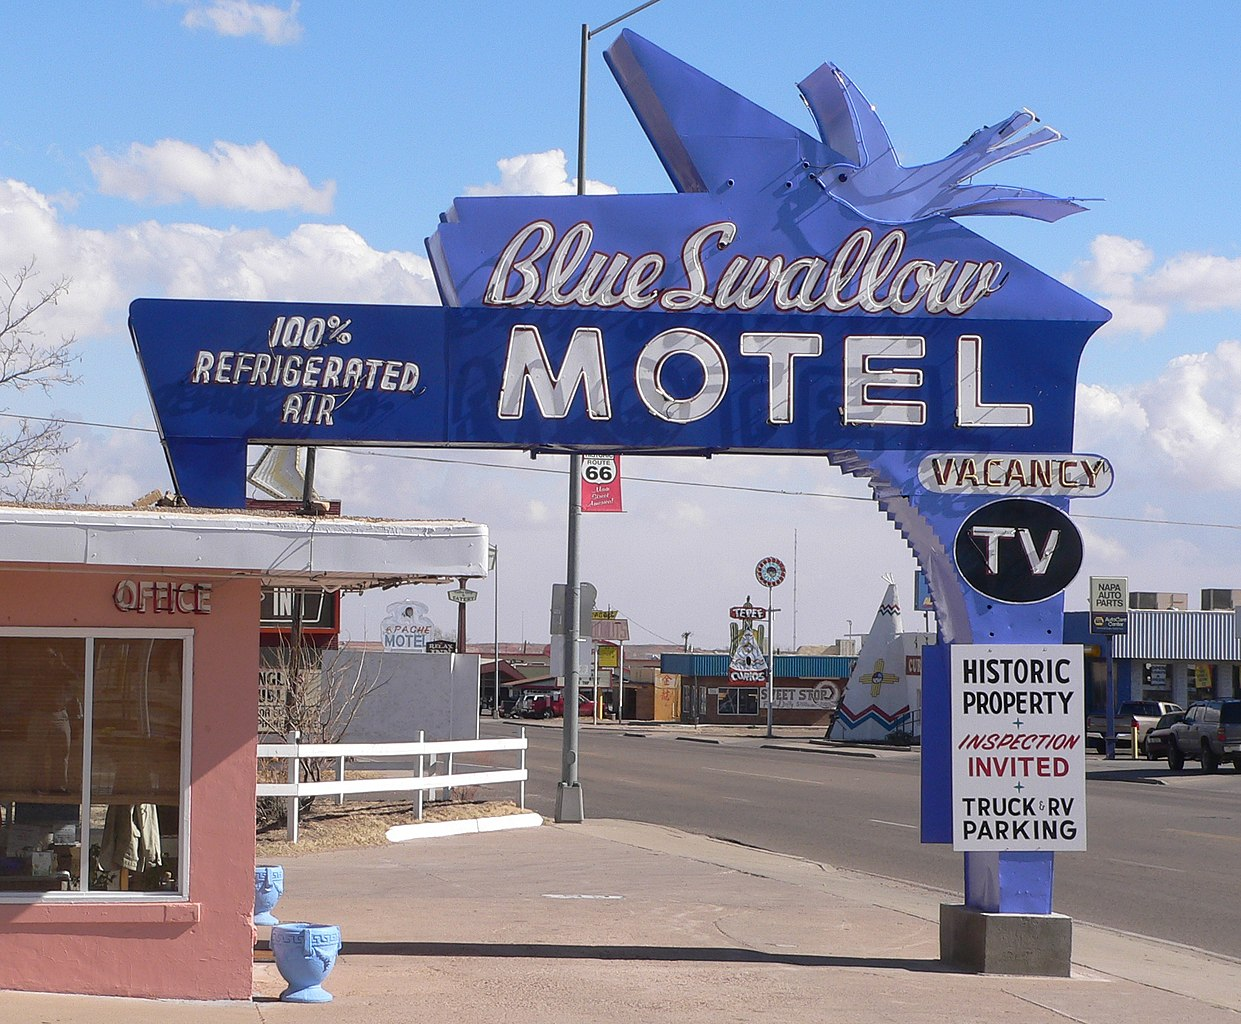 file blue swallow motel sign from w 1 jpg wikimedia commons file blue swallow motel sign from w 1